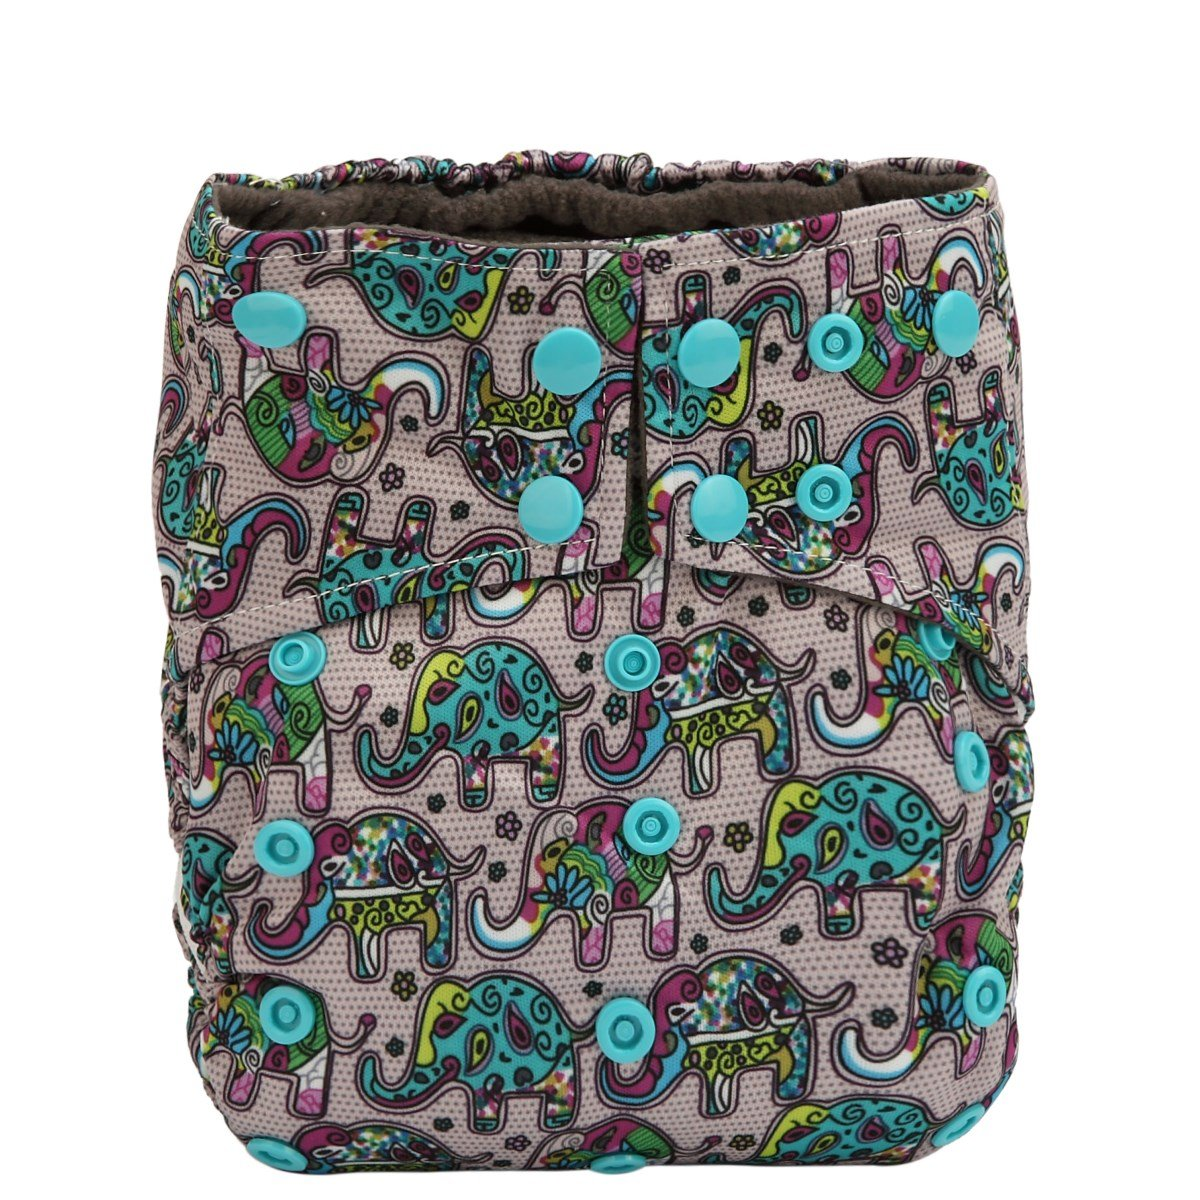 Sigzagor AIll in One Night AIO Cloth Diaper Nappy Sewn in Charcoal Bamboo Insert Reusable Washable Pink Unicorn